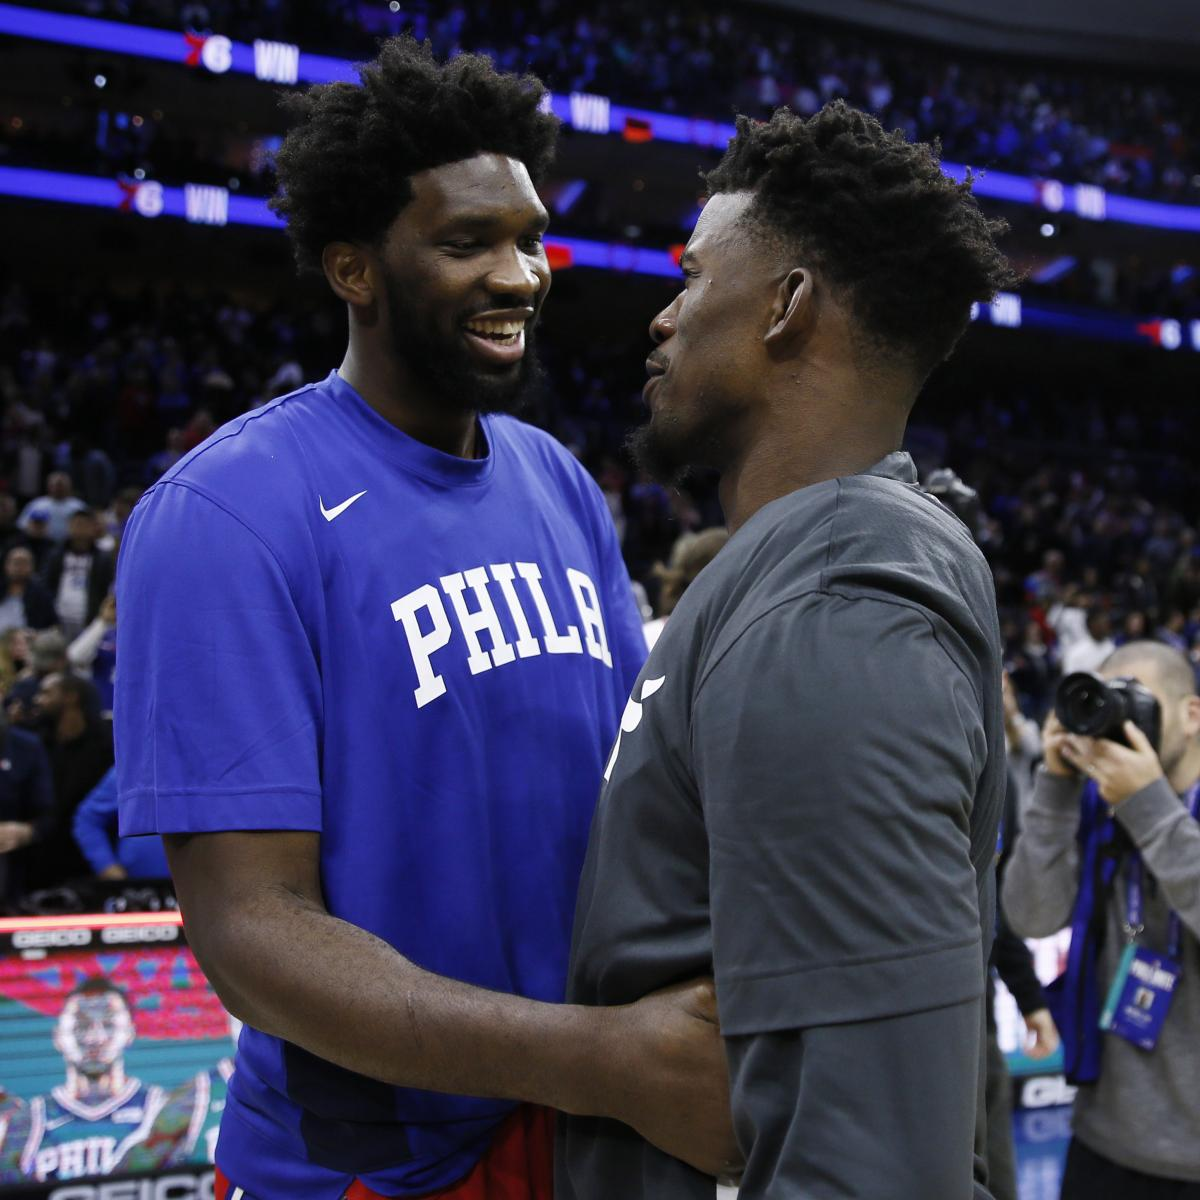 Jimmy Butler Talks 76ers Tenure, Says Some Teammates Didn't Work as Hard as Him